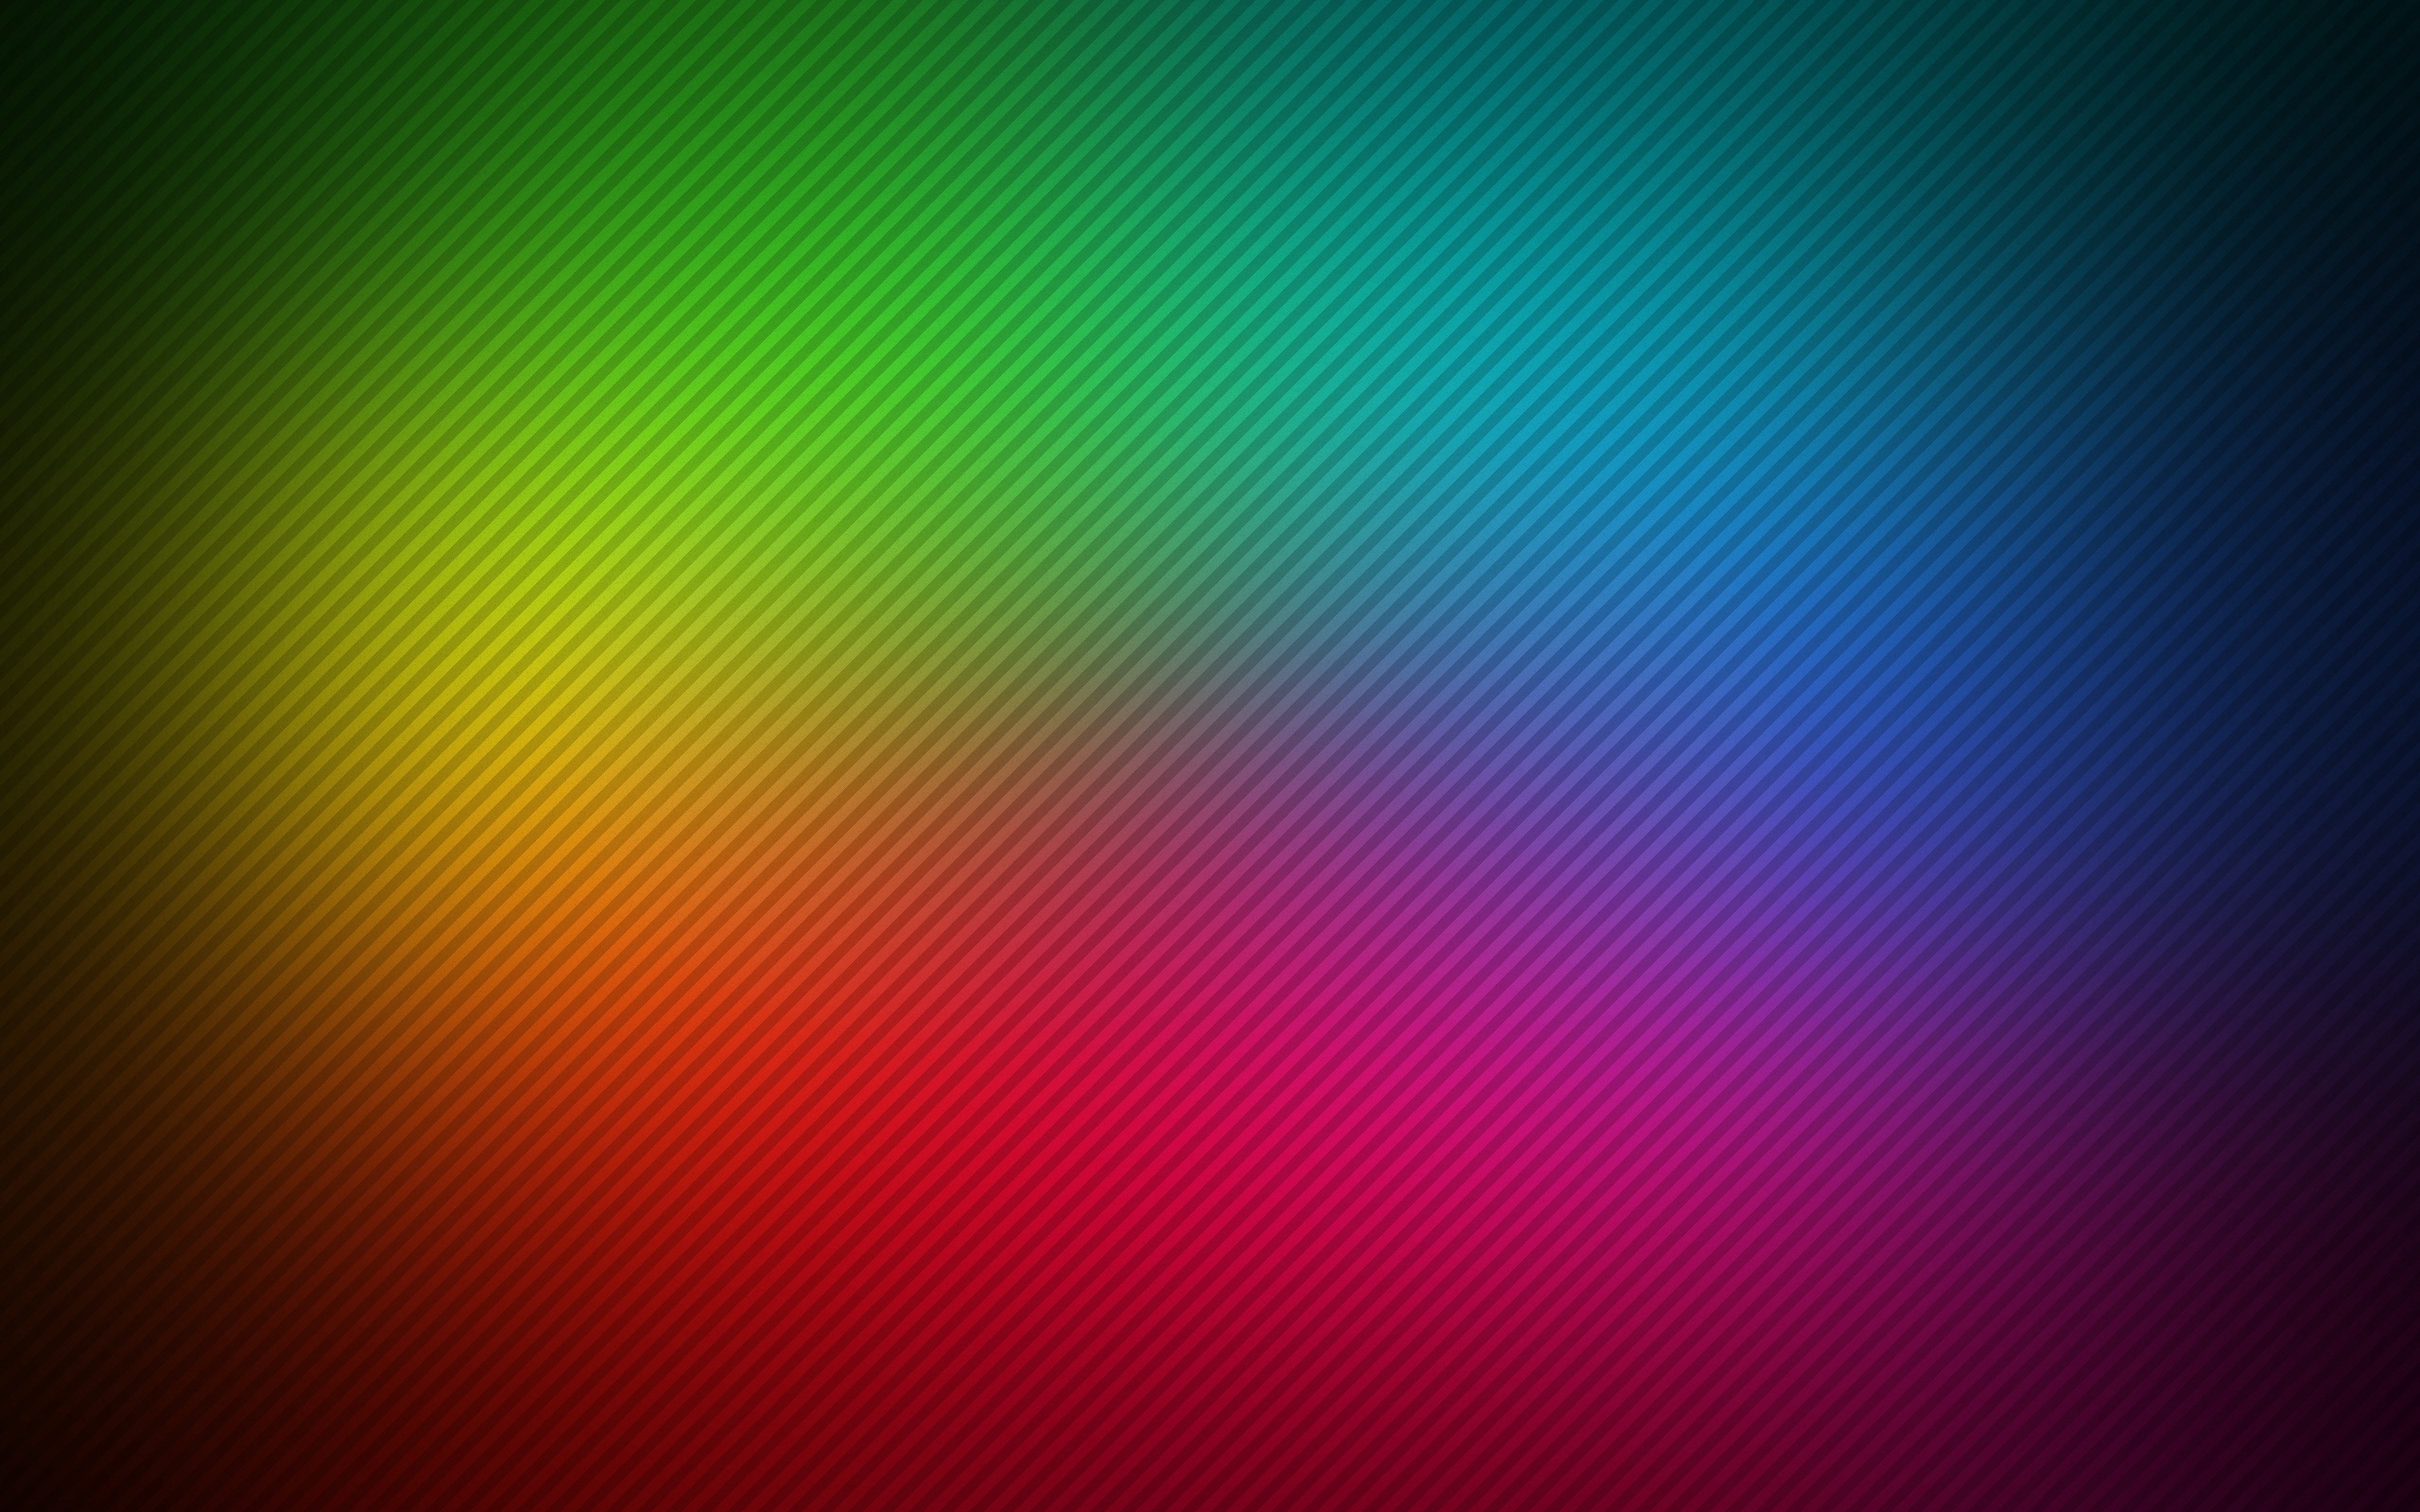 Surface Spot Background Texture Colorful   Stock Photos 2560x1600